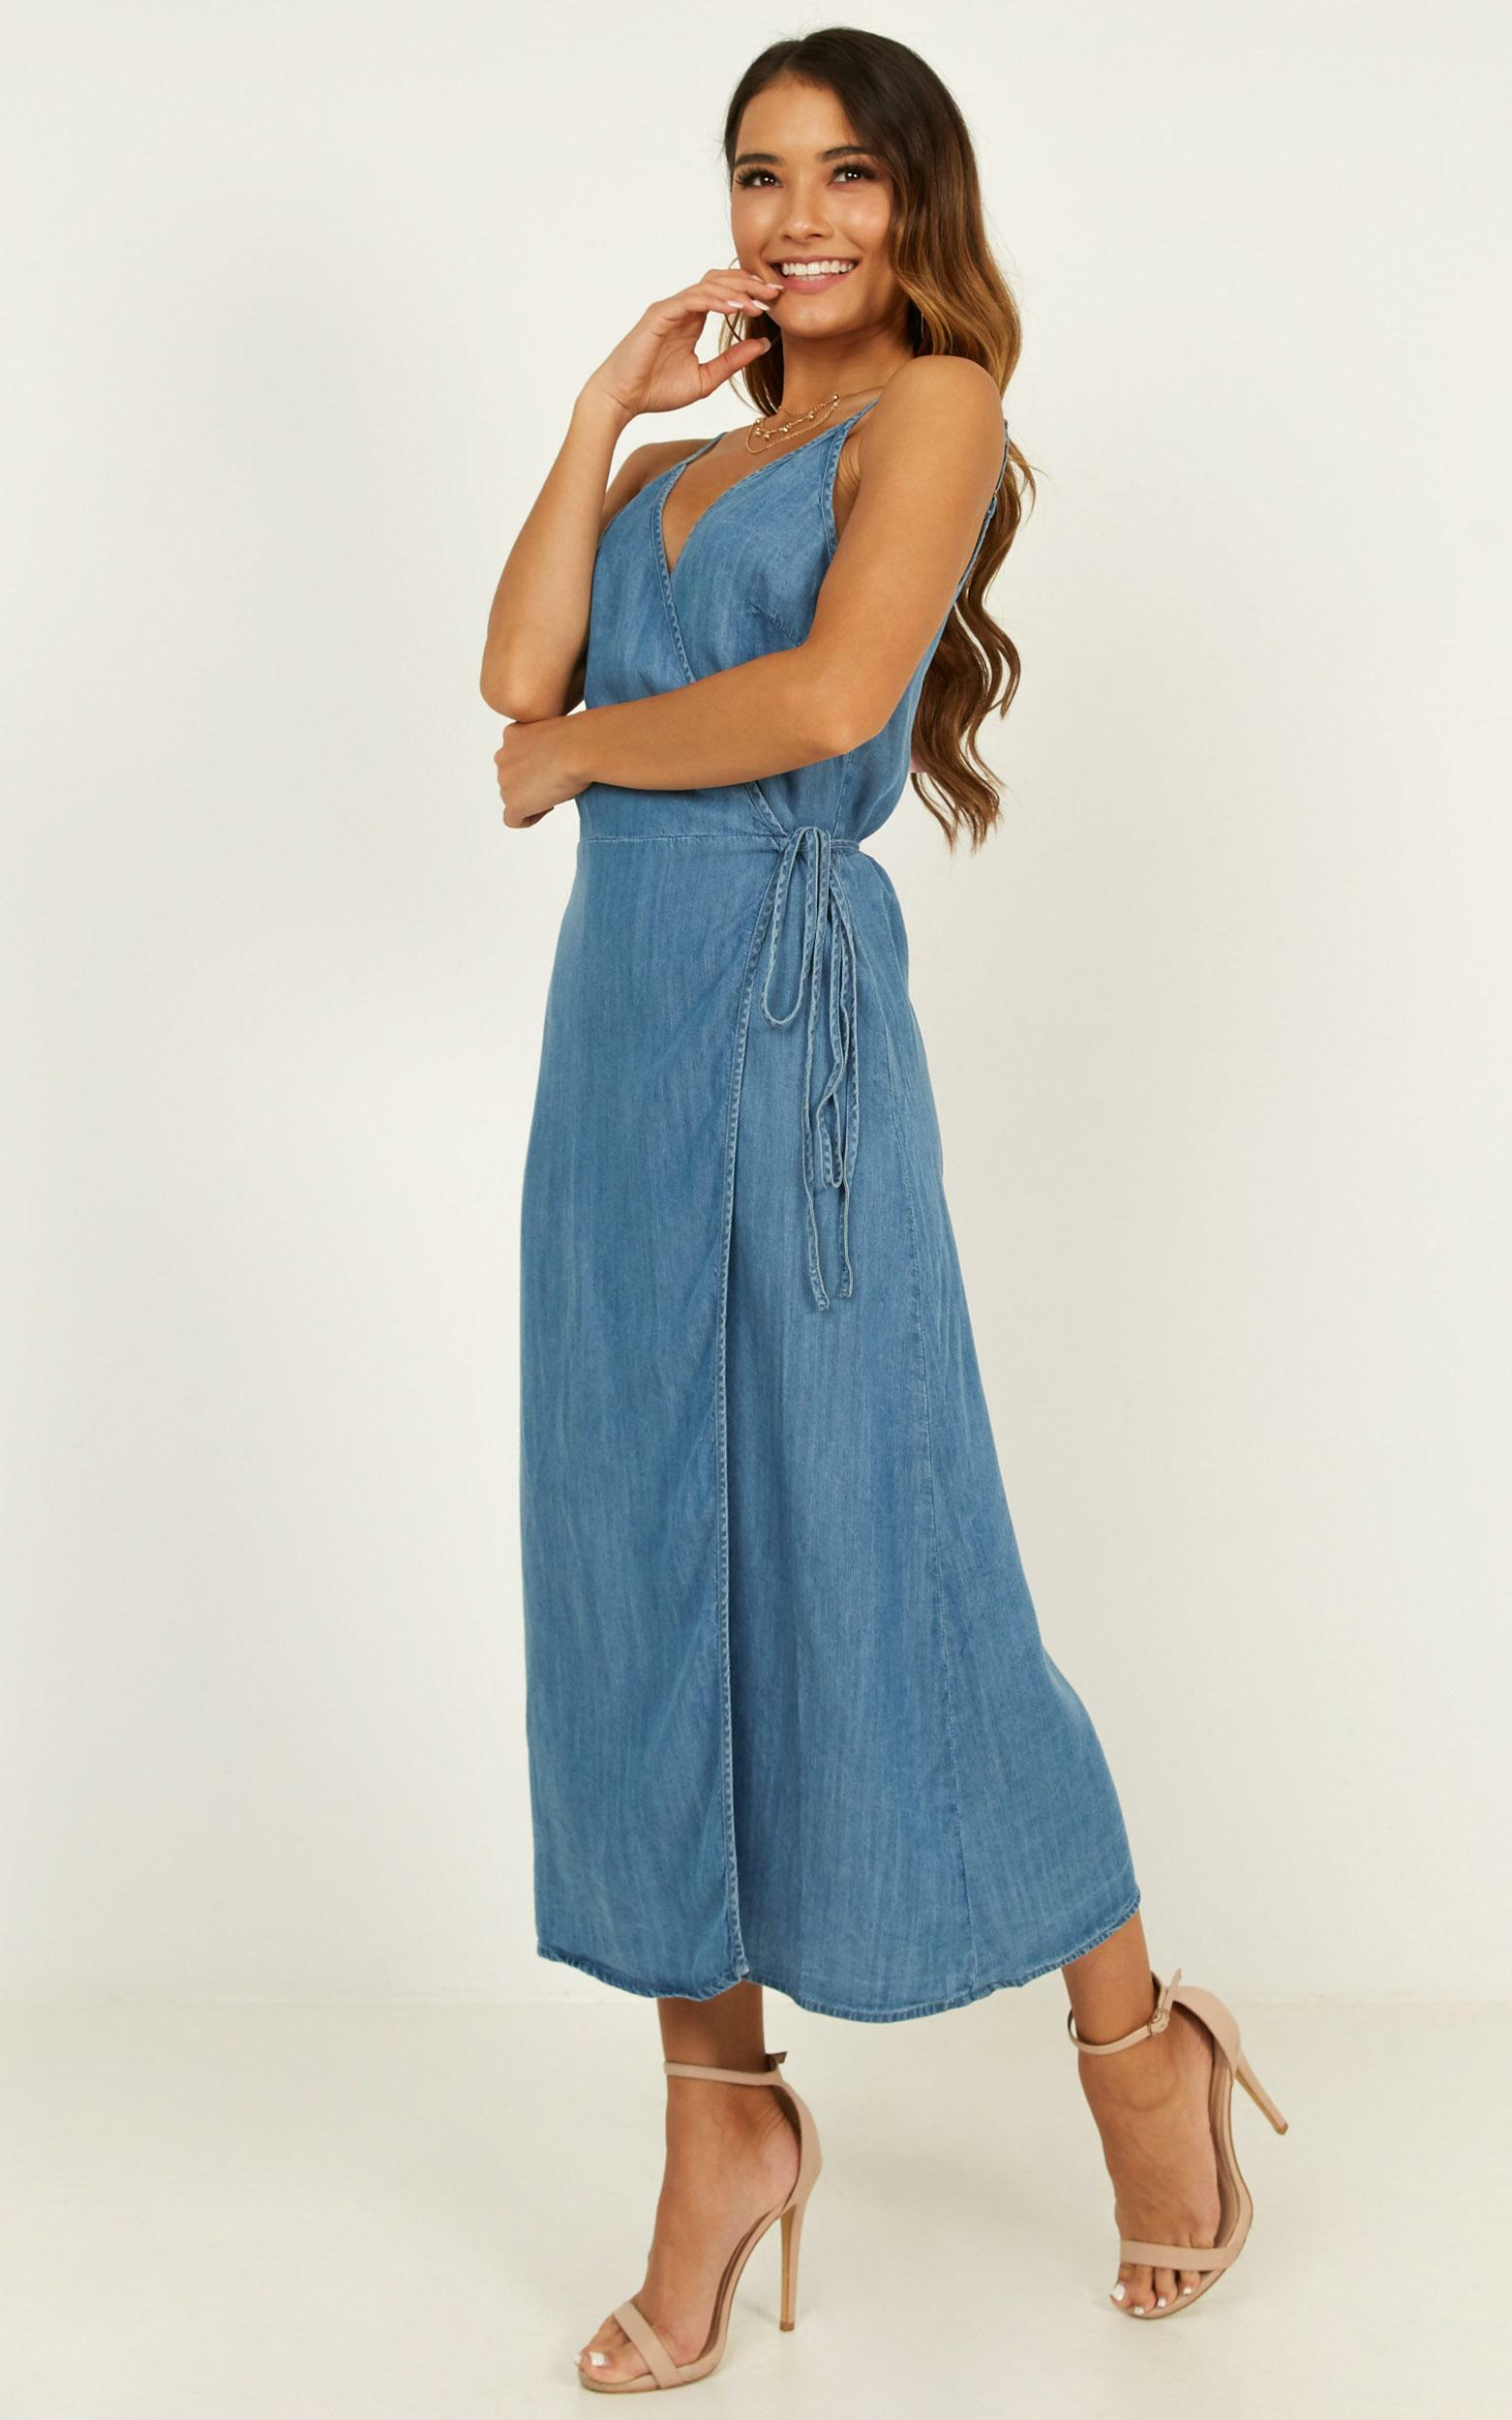 Perfect Remedy denim dress in mid wash - 12 (L), Blue, hi-res image number null